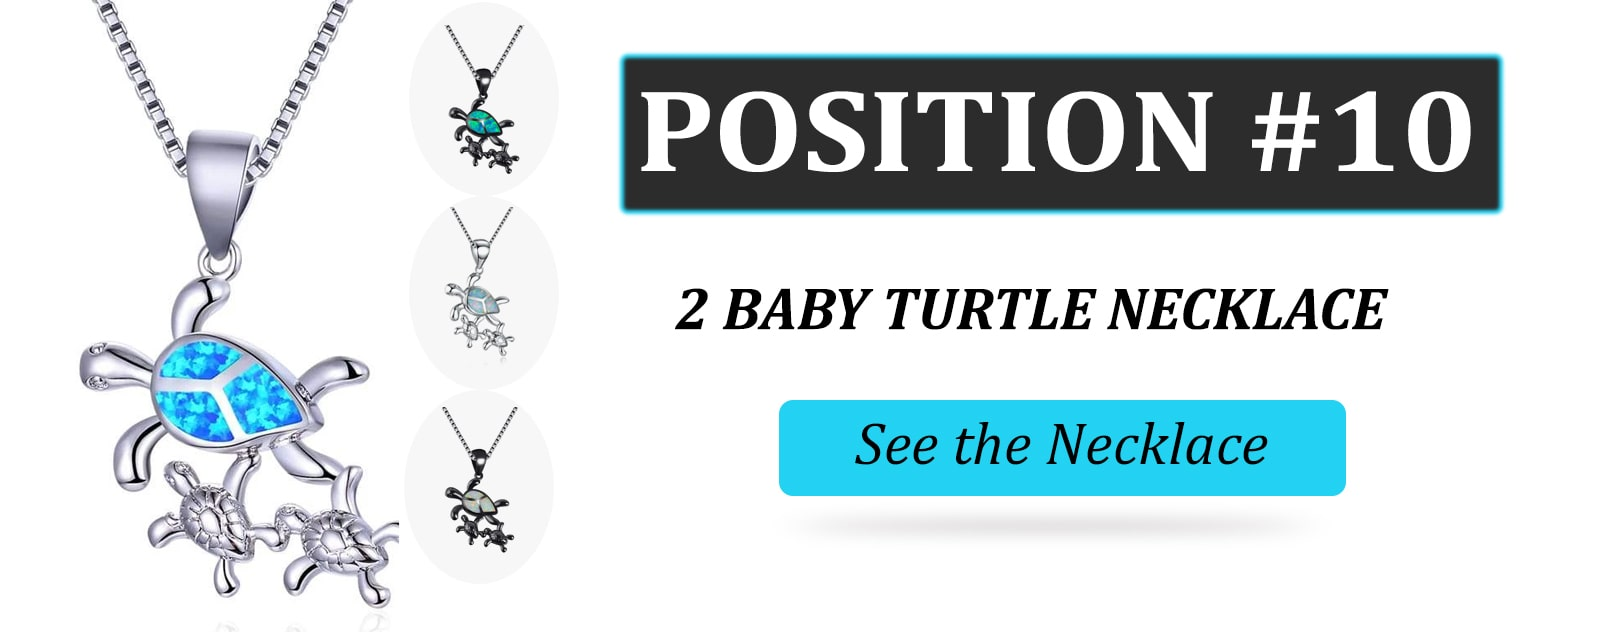 2 Baby Turtle Necklace - Turtle Store